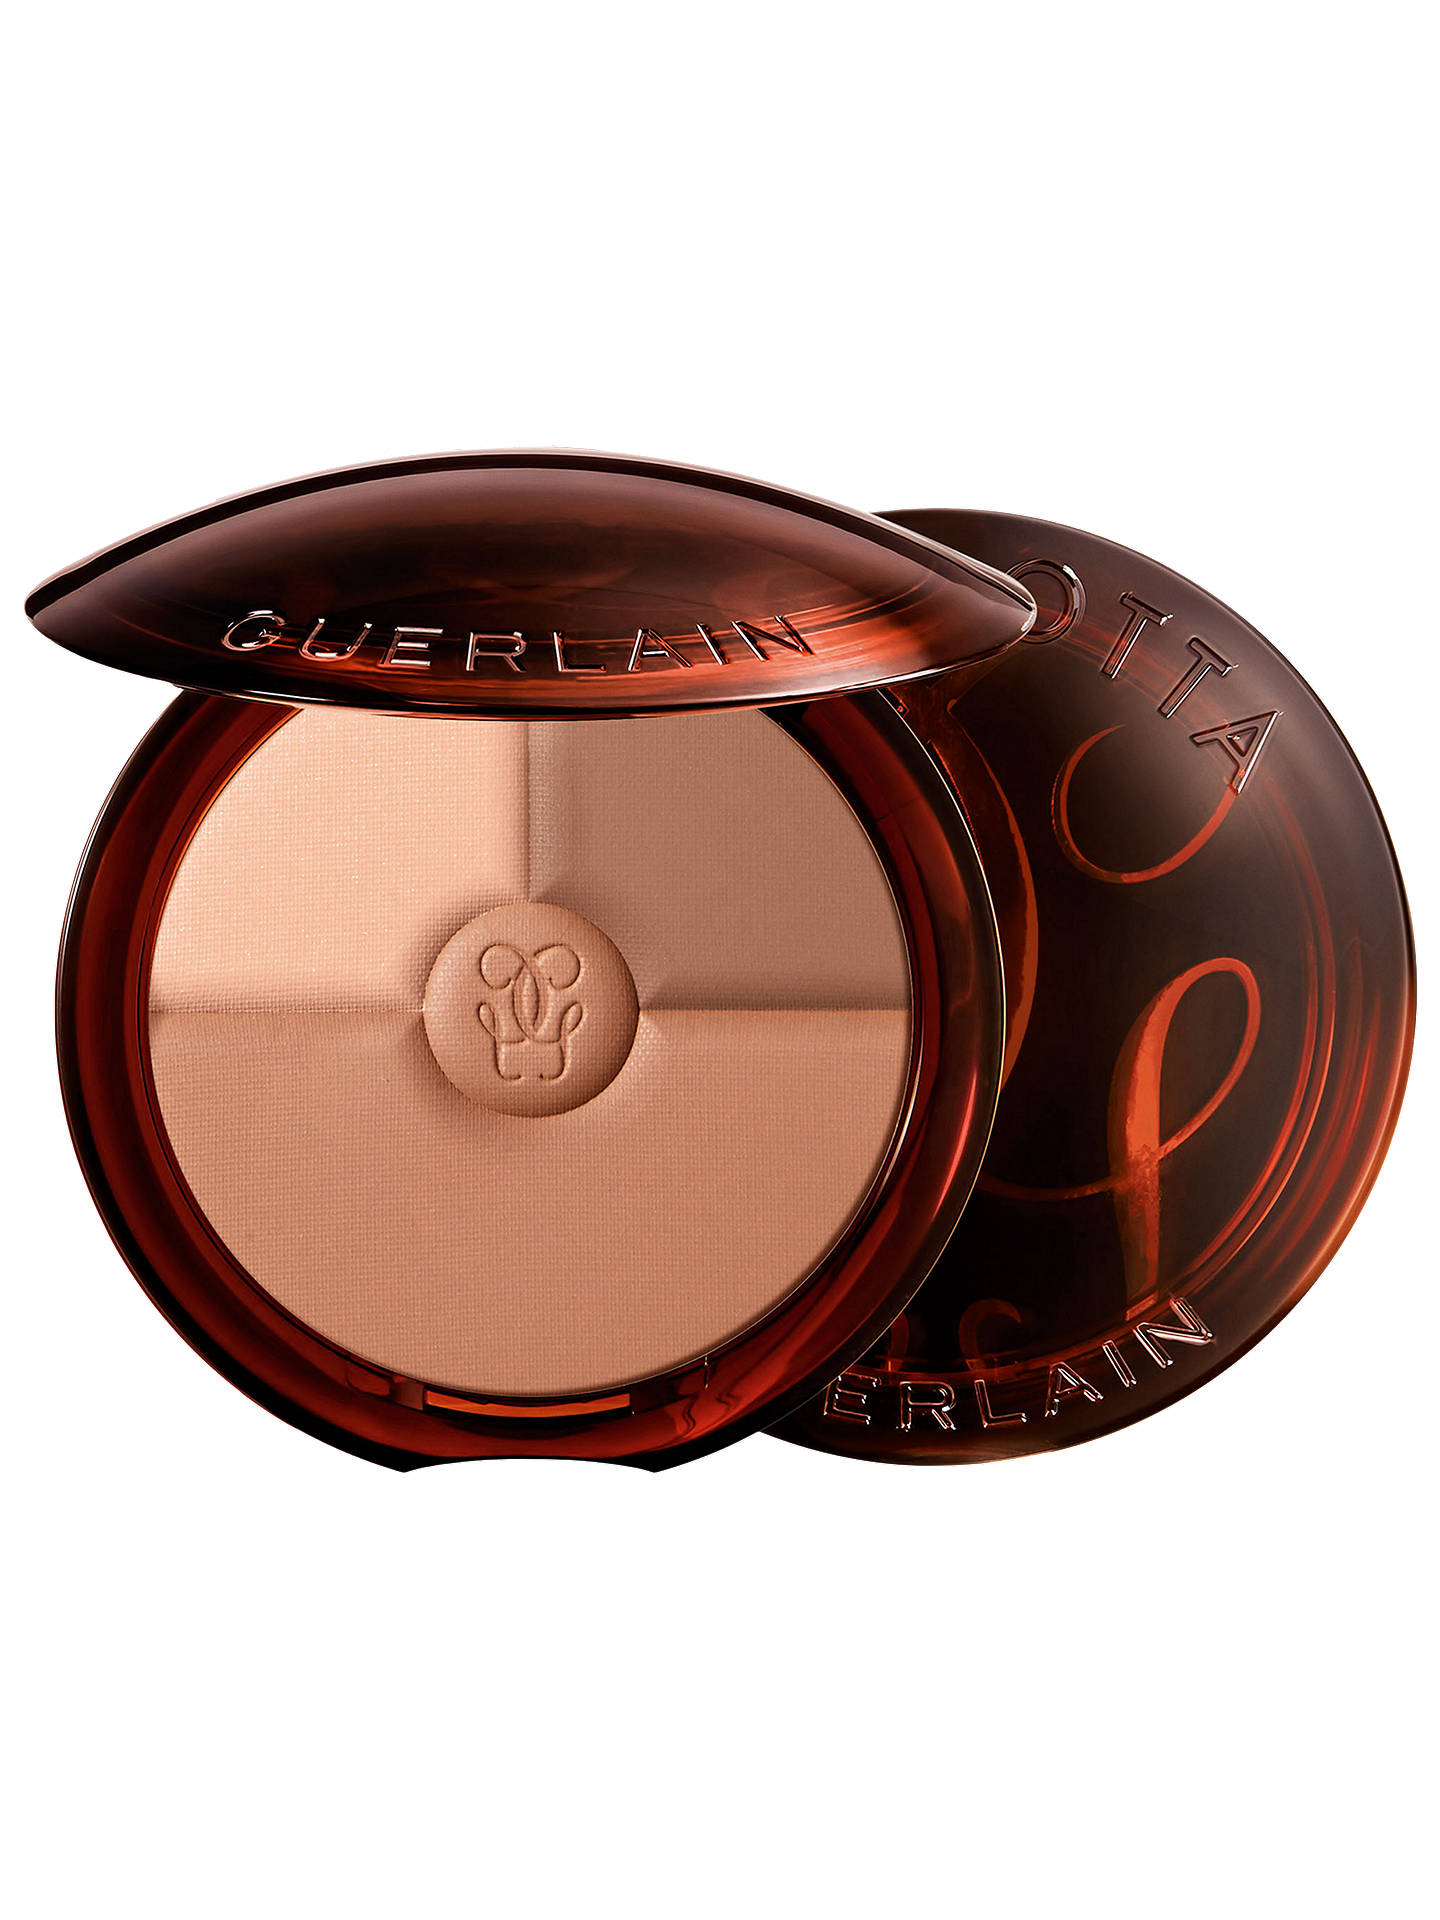 BuyGuerlain Terracotta Collecter Powder, Natural Bronze Online at johnlewis.com